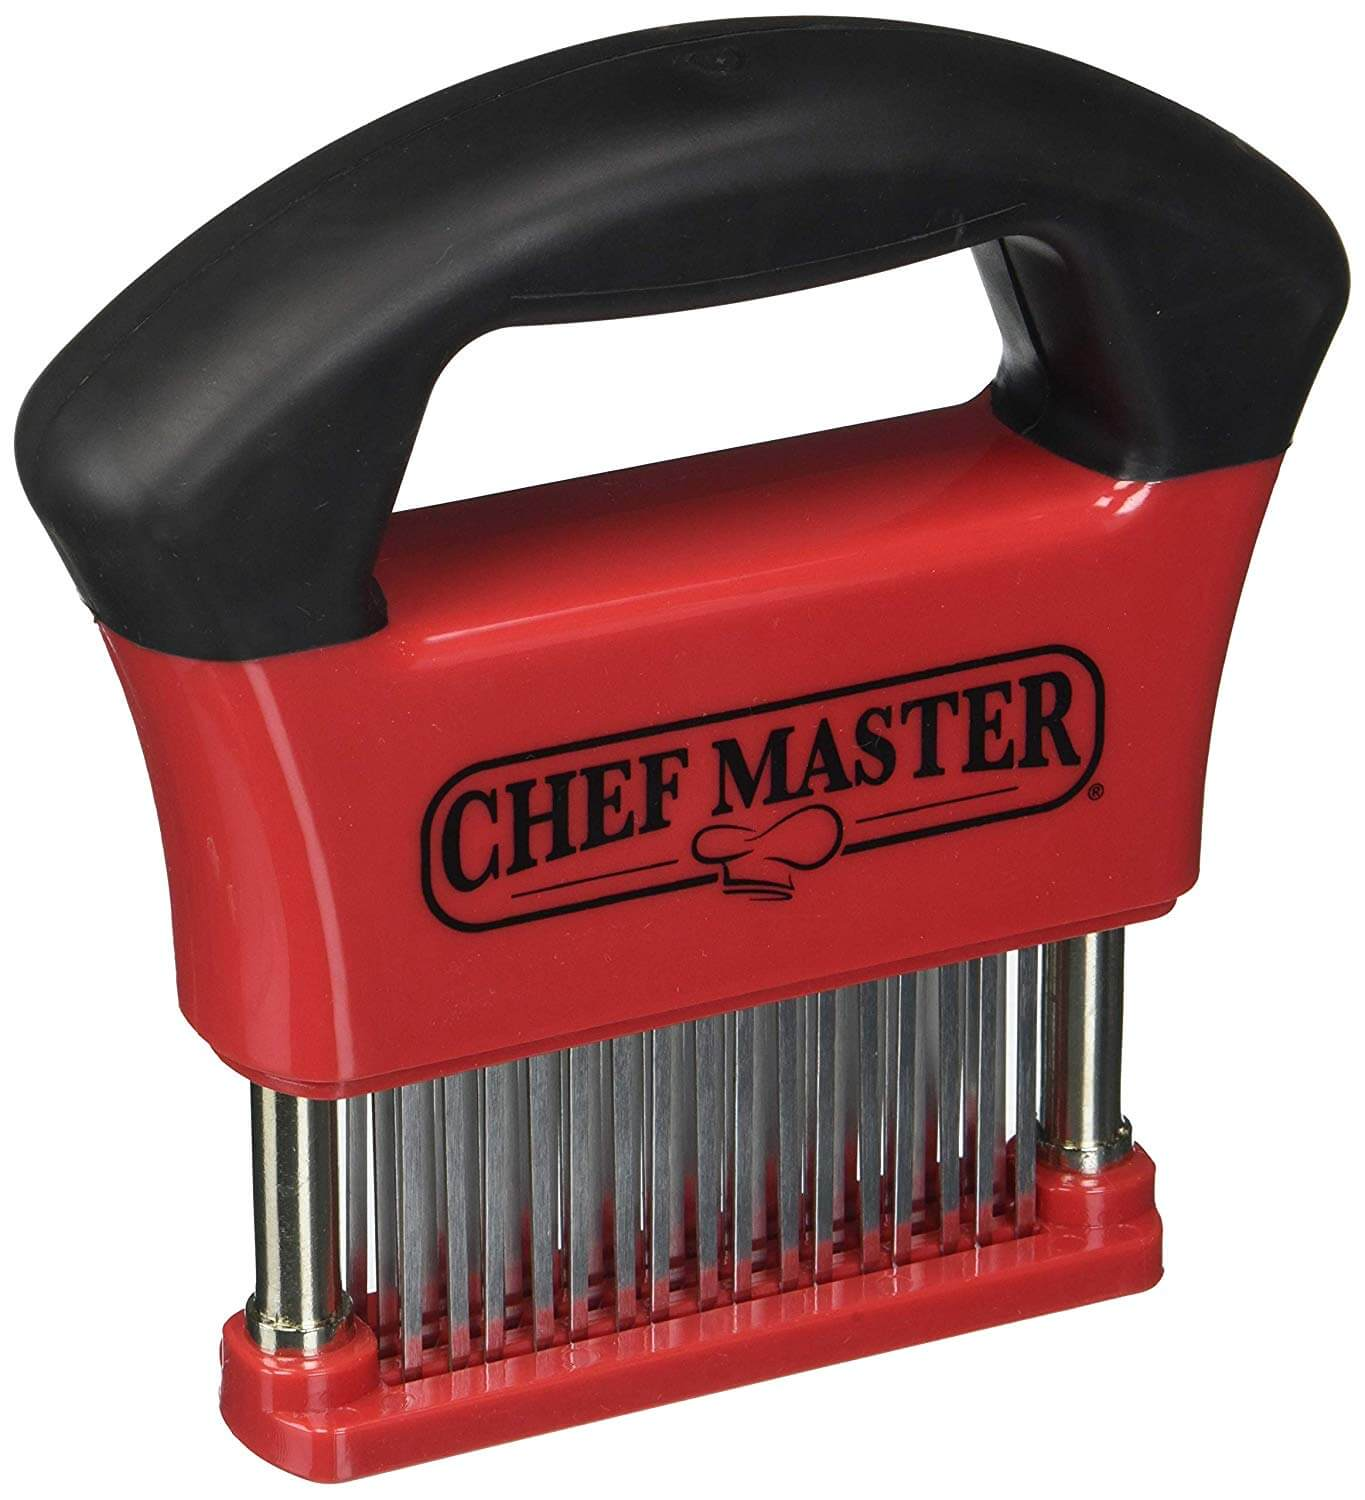 Chef Master 90009 Professional Meat Tenderizer